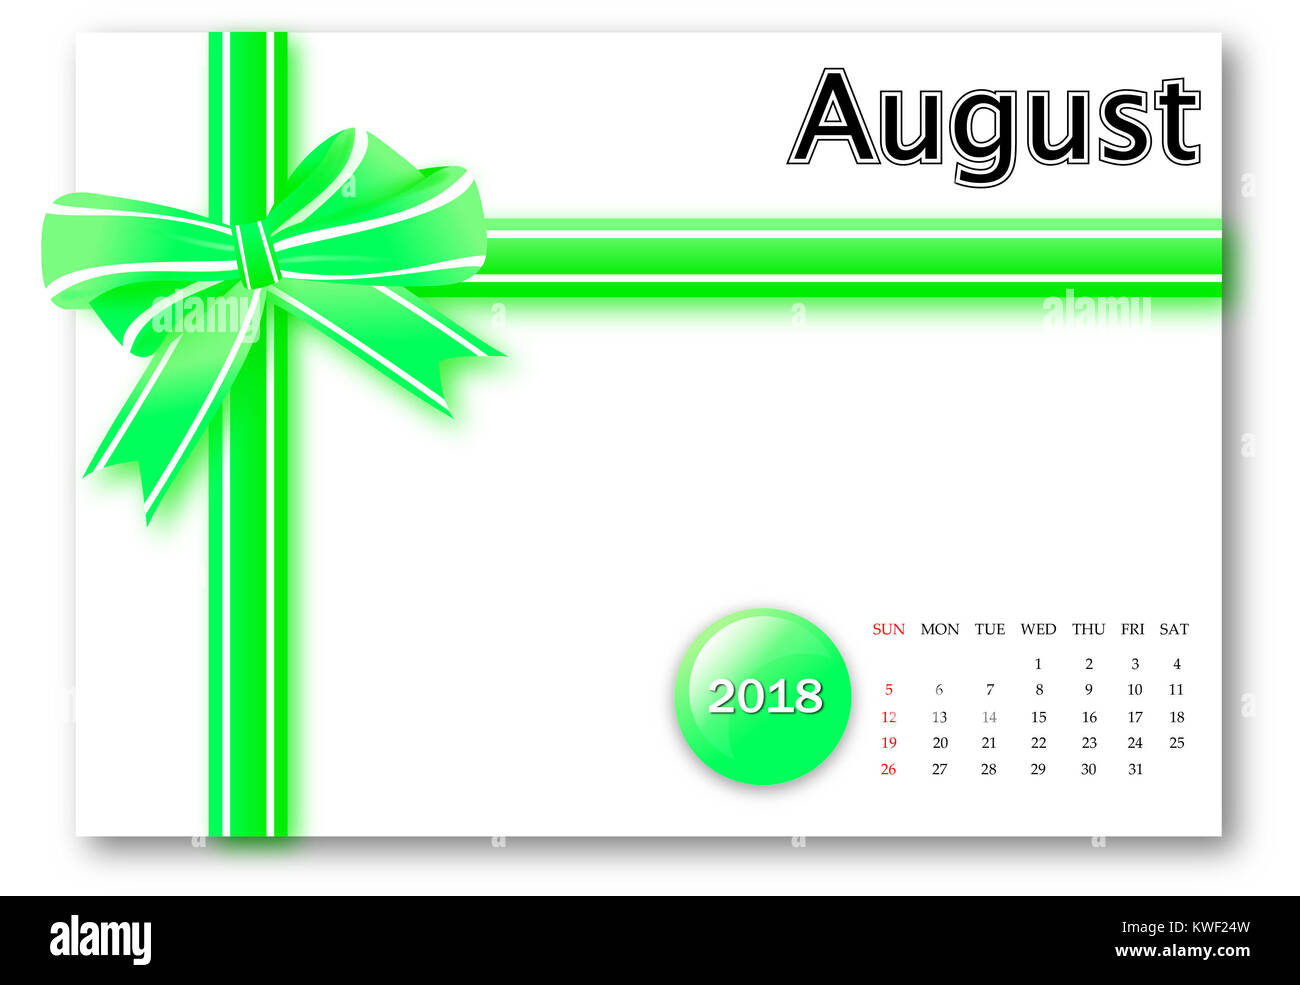 August 2018 - Calendar series with gift ribbon design - Stock Image